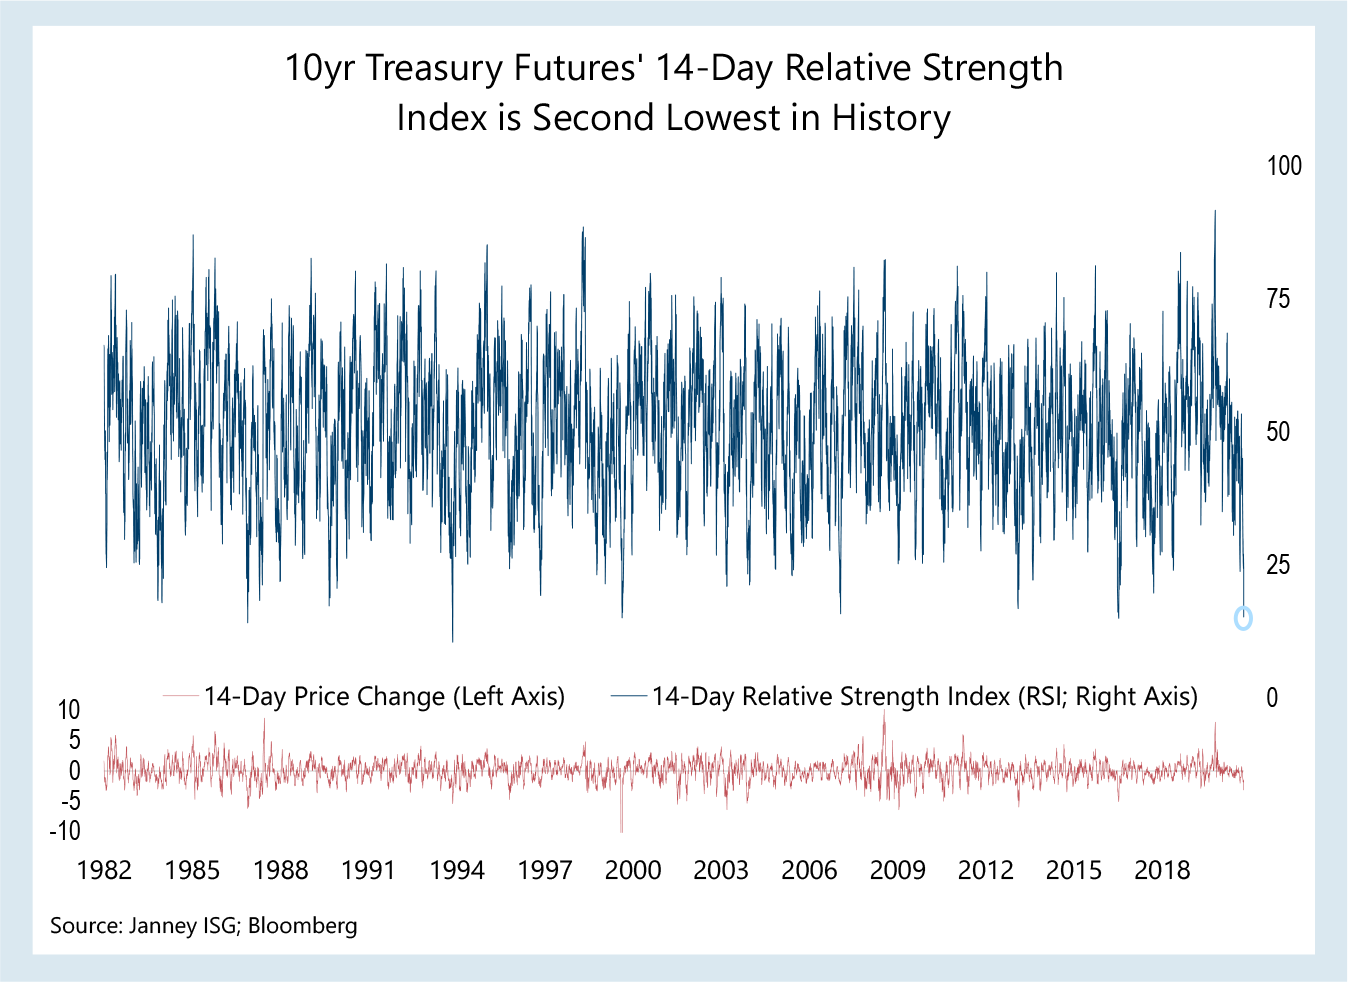 A chart shows 10 year treasury futures' 14-day relative strength